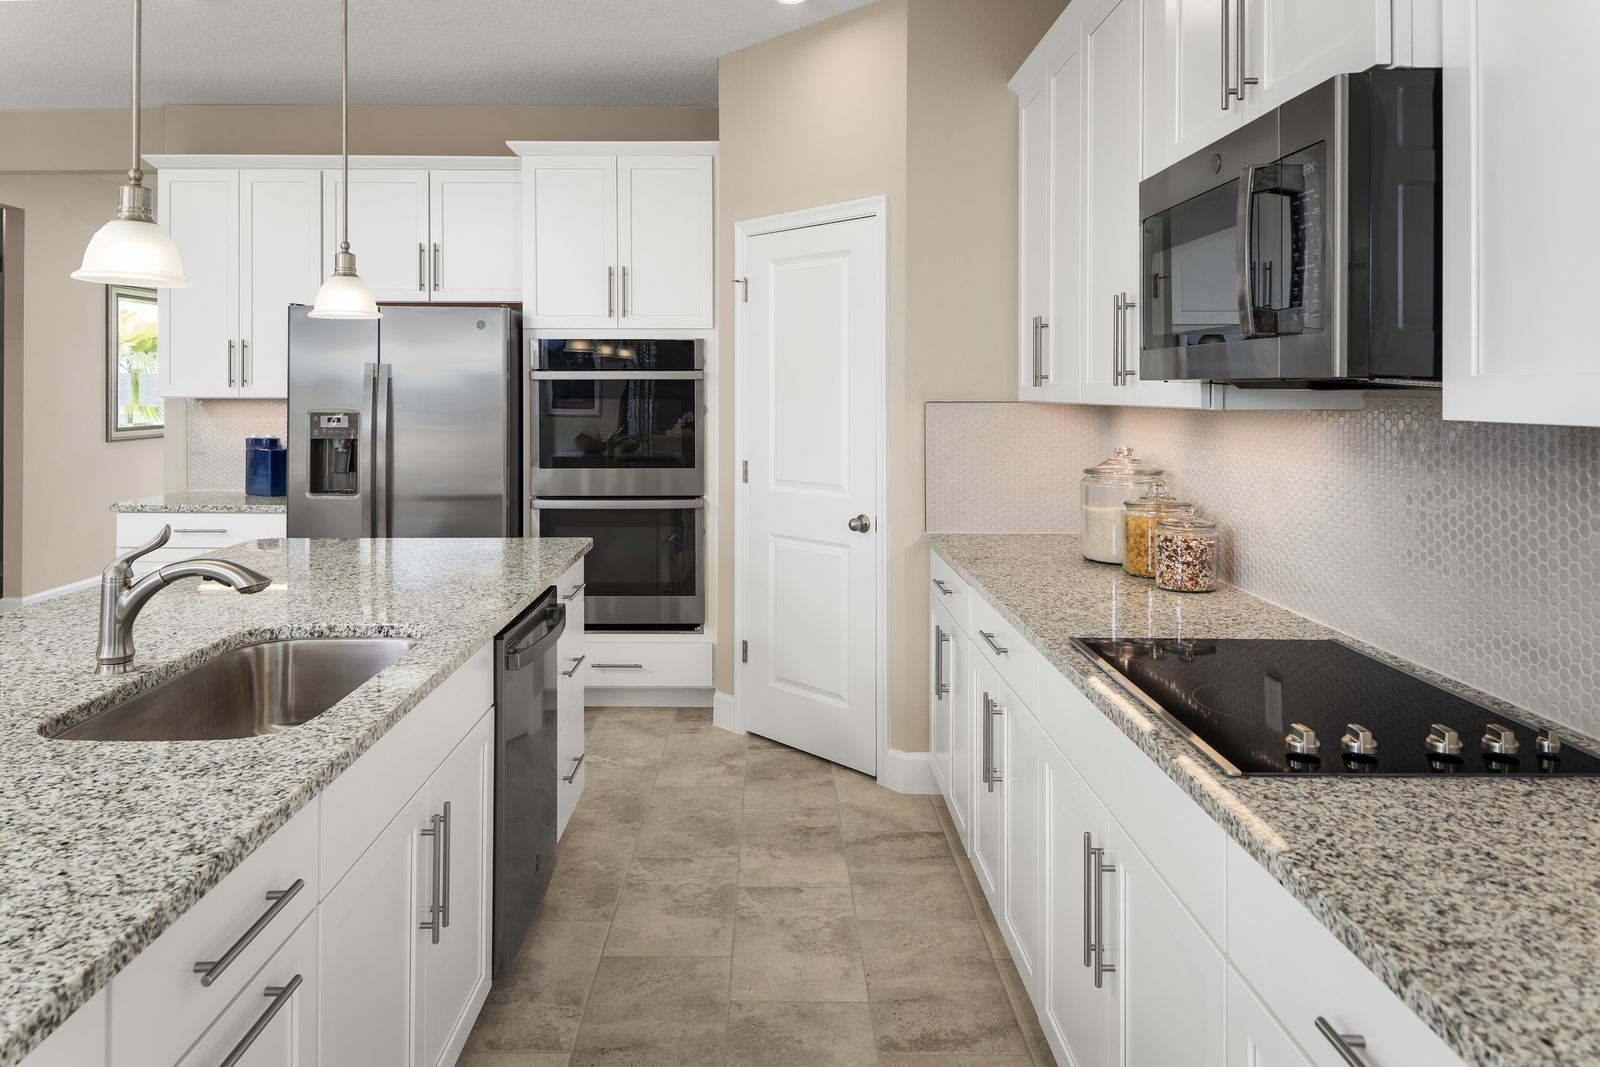 Kitchen featured in the Lynn Haven By Ryan Homes in Tampa-St. Petersburg, FL